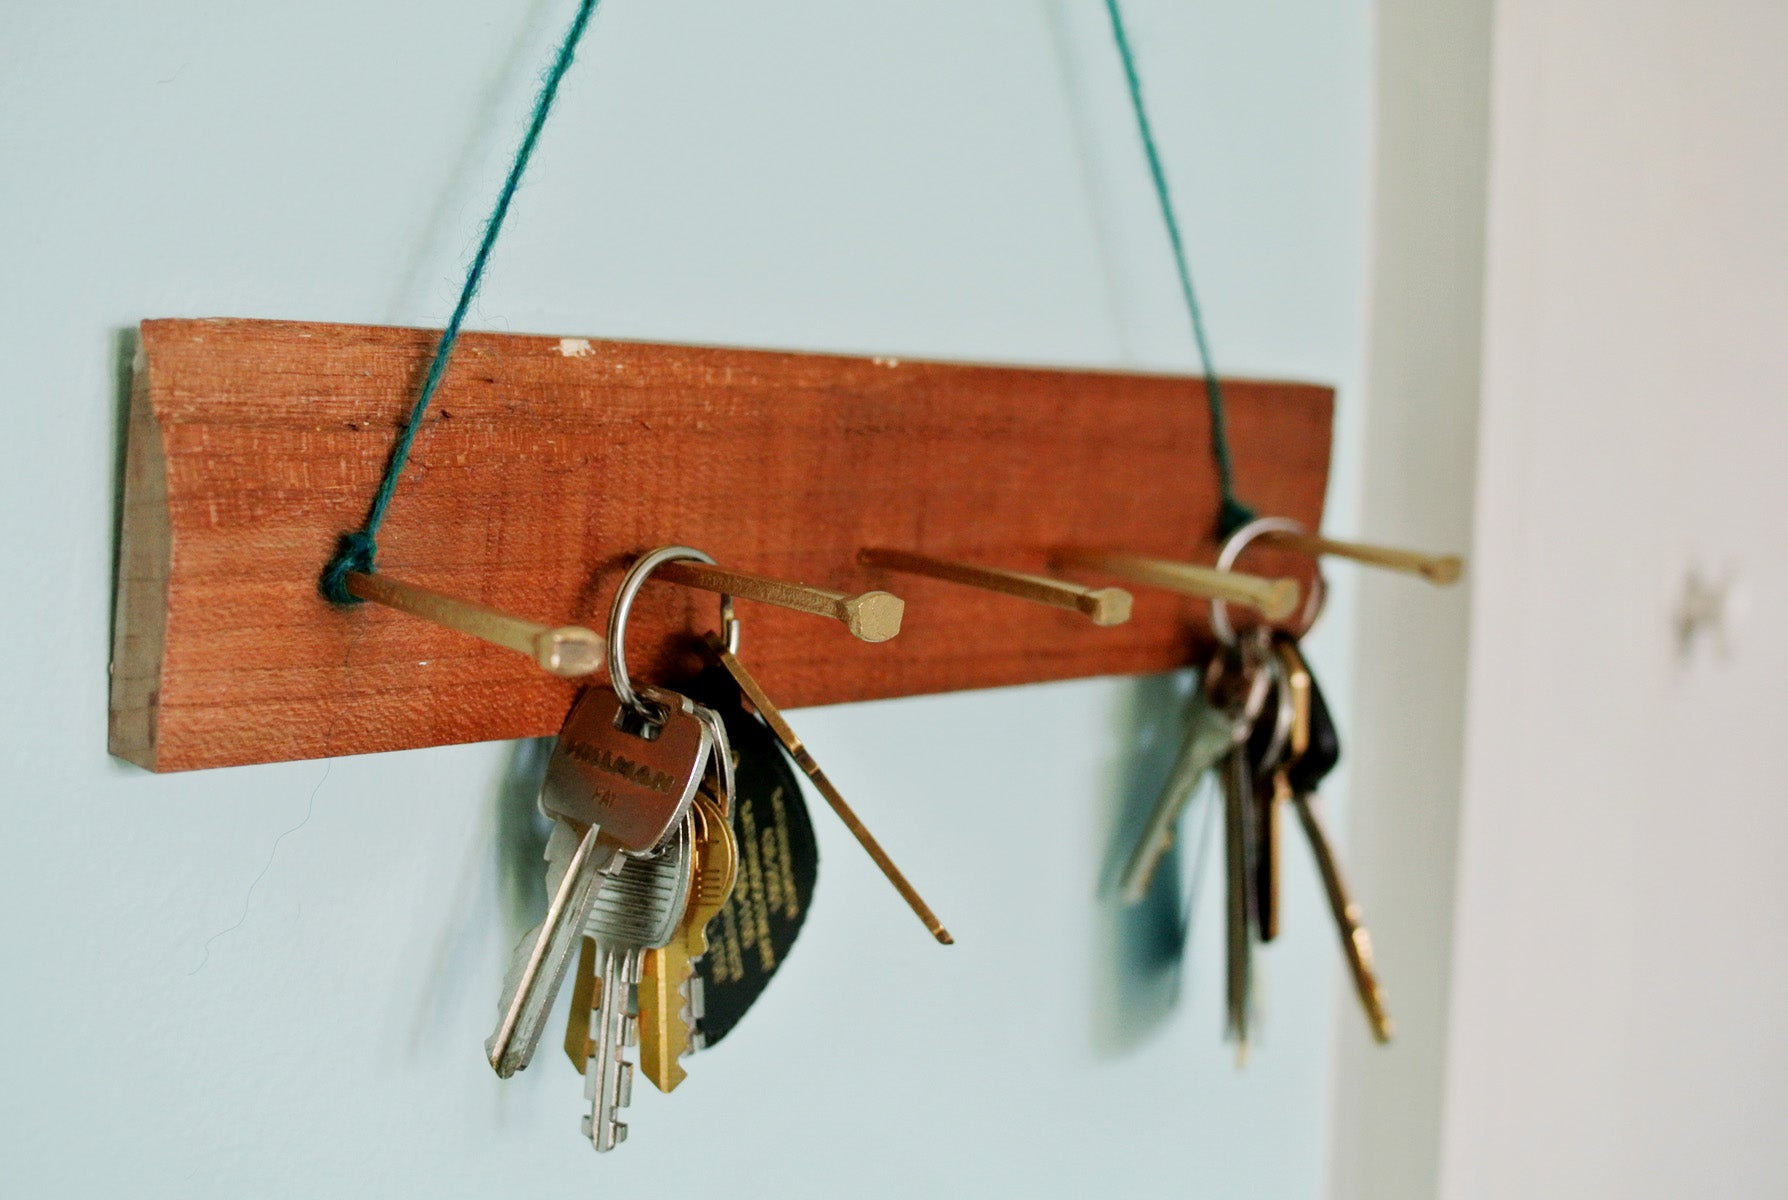 Looking for a stylish place to hook your keys? Tired of boring store-bought key racks? Create this easy rack for your keys in just a few minutes and just a few dollars with a few materials you may have already laying around the house!